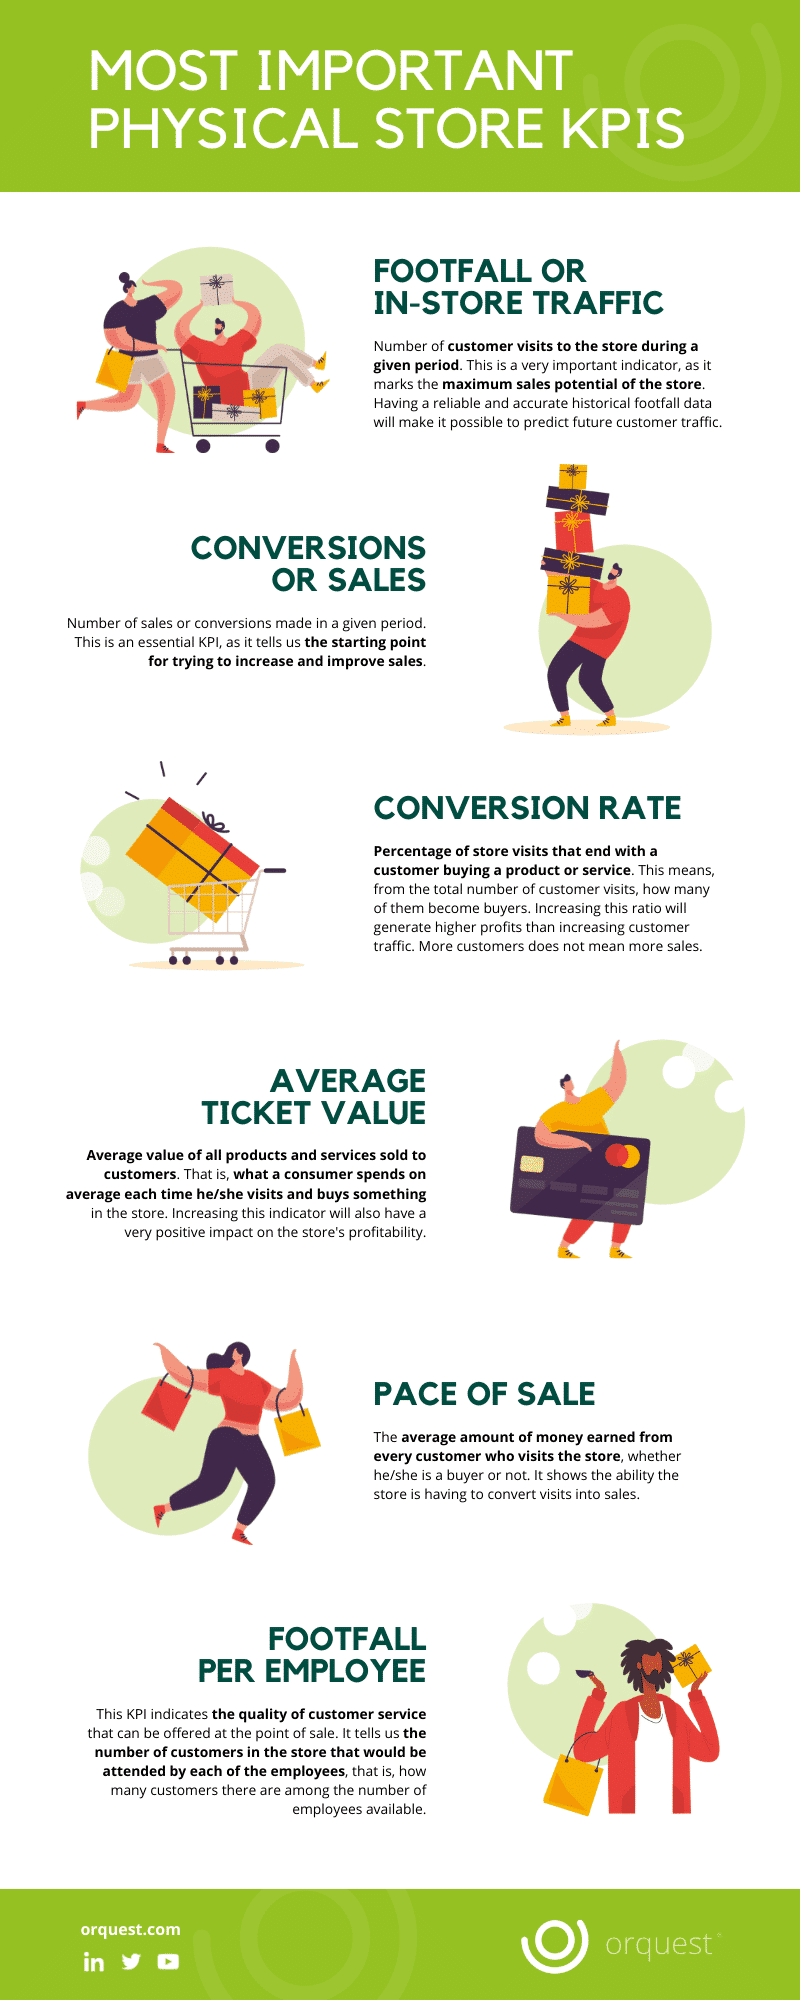 Infographic: Most Important Physical Store KPIs